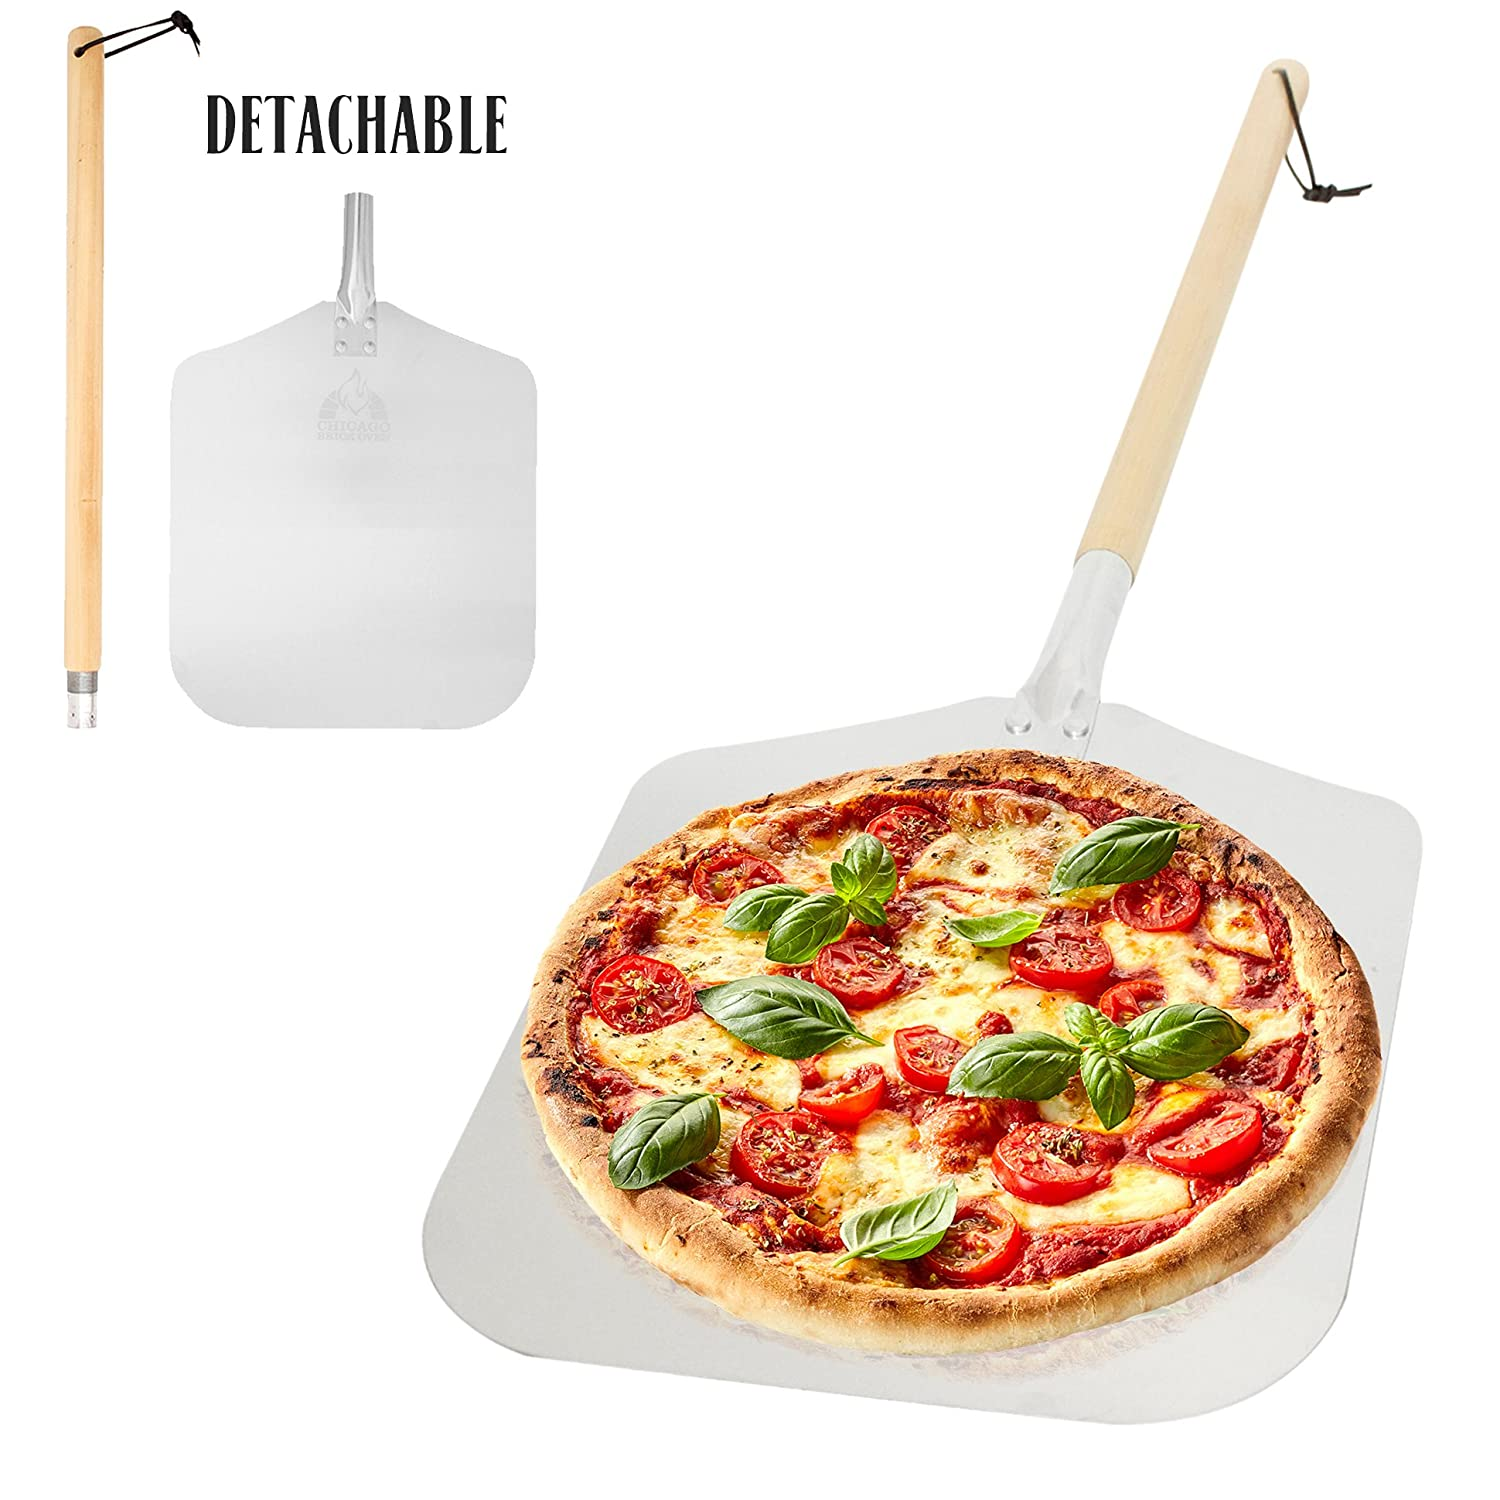 "Aluminum Pizza Peel Paddle with Detachable Wooden Handle, 12"" x 14"" inch Blade, Long 21.5"" Handle with Leather Strap, 35.5 inch overall - Outdoor Pizza Oven Accessories"